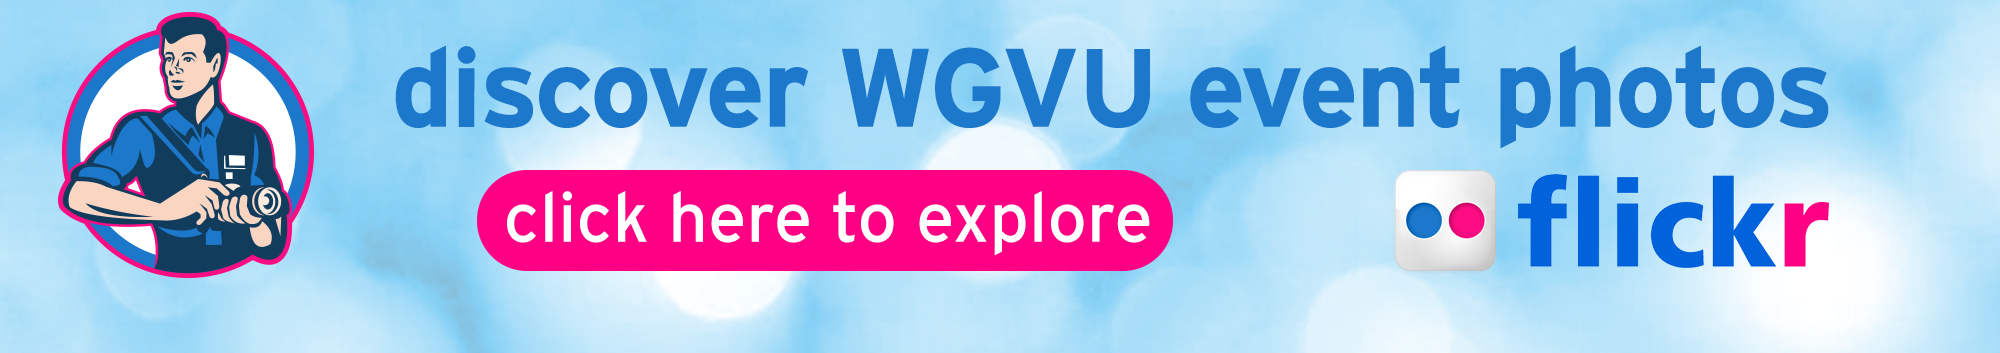 WGVU Event Photos